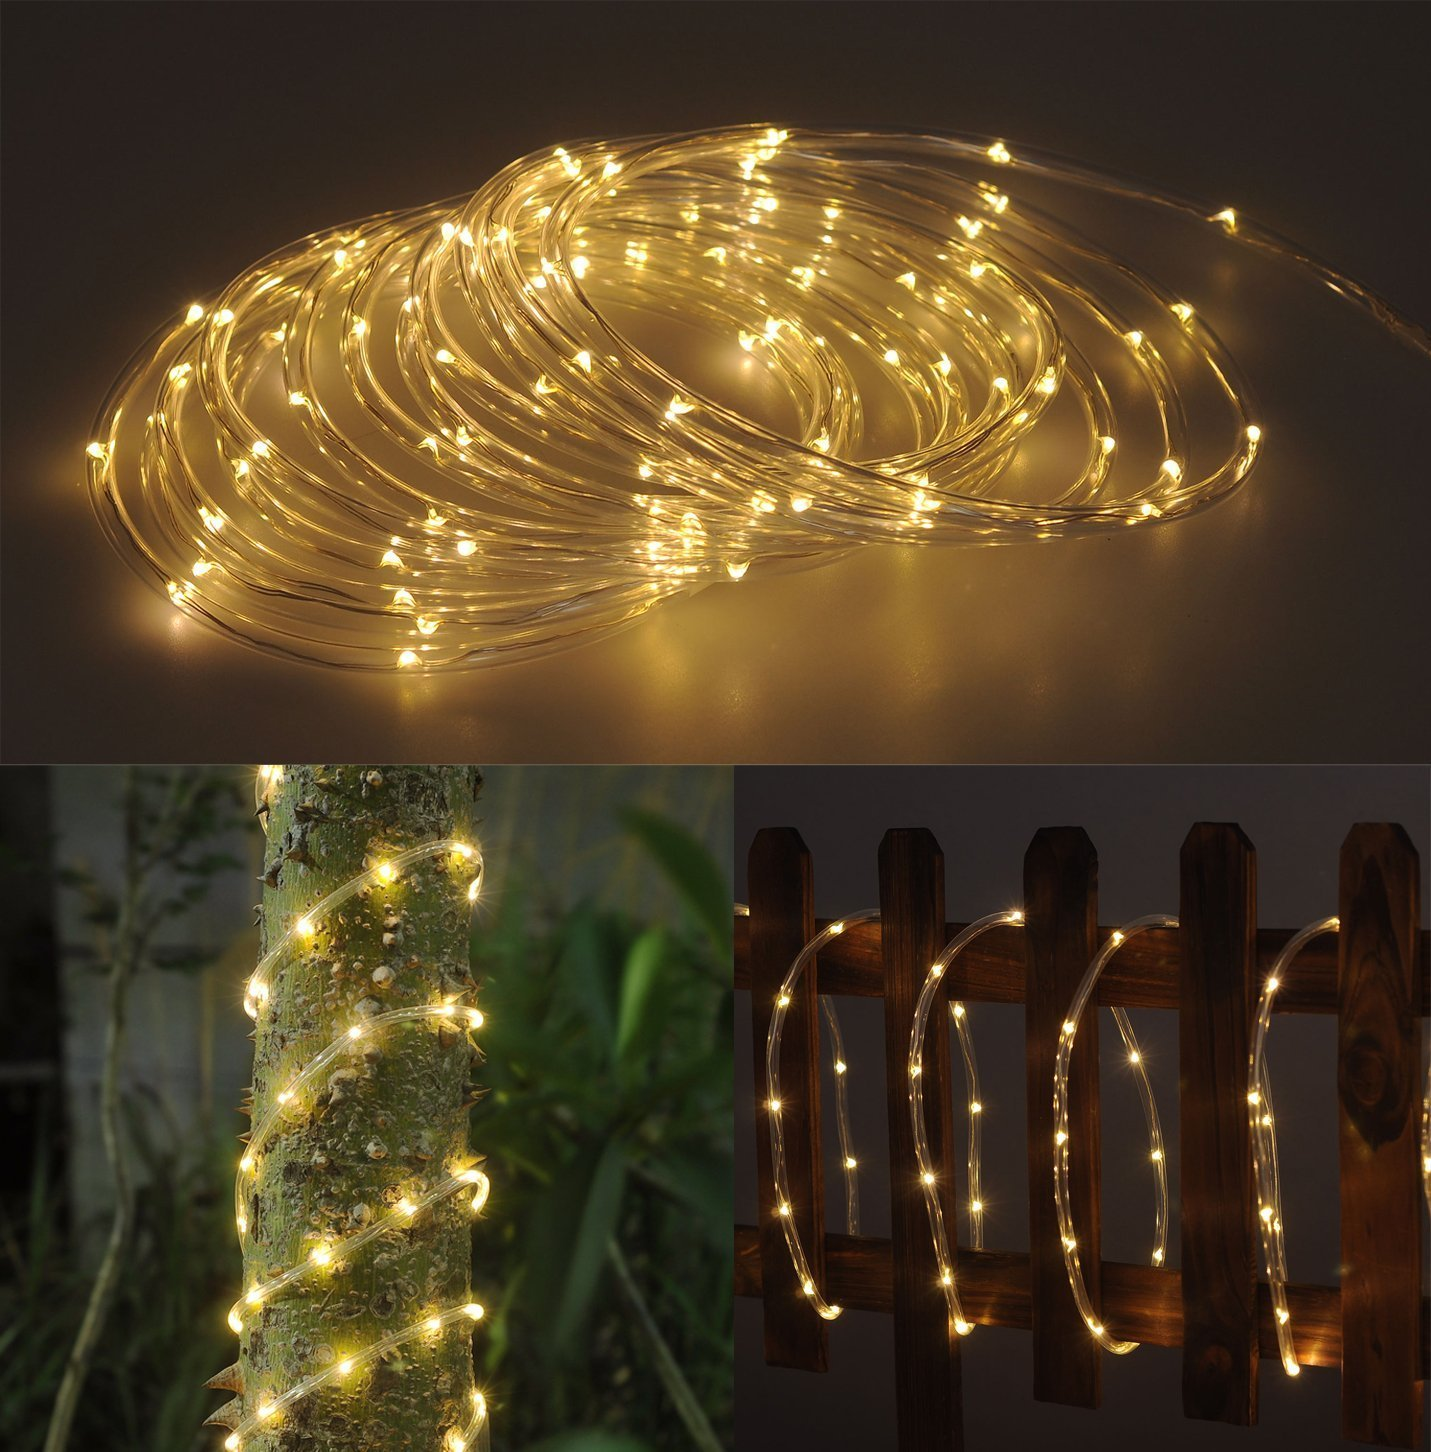 Amazon solar rope tube 100 led starry string garden light 17 amazon solar rope tube 100 led starry string garden light 17 feet long total length warm white waterproof for outdoor patio gardens homes arubaitofo Gallery